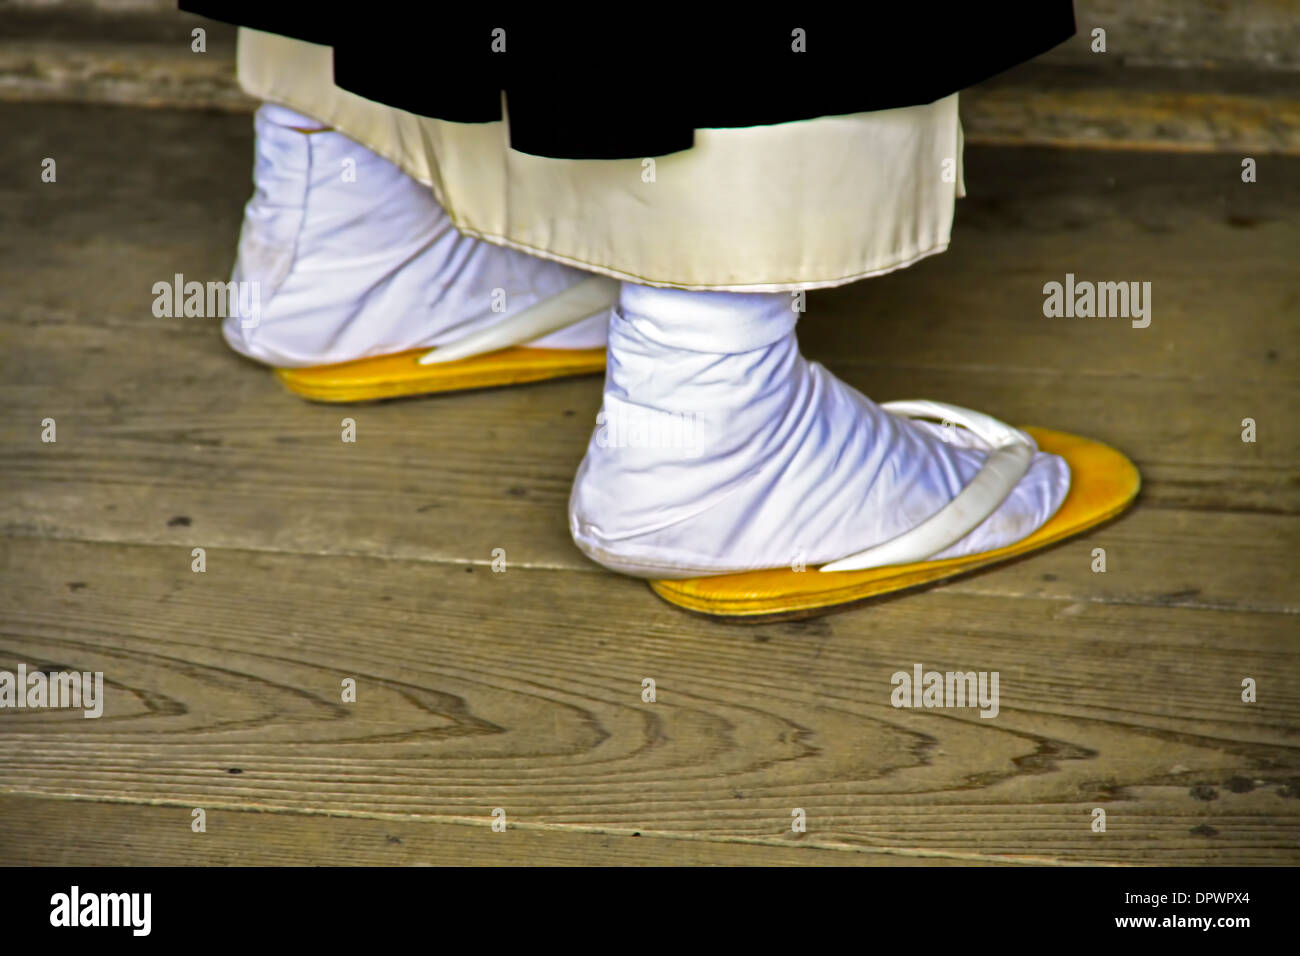 Monk 's feet, dressed in traditional Japanese Tabi socks and sandals,  Nigatsu-dō, Nara, Japan. - Stock Image